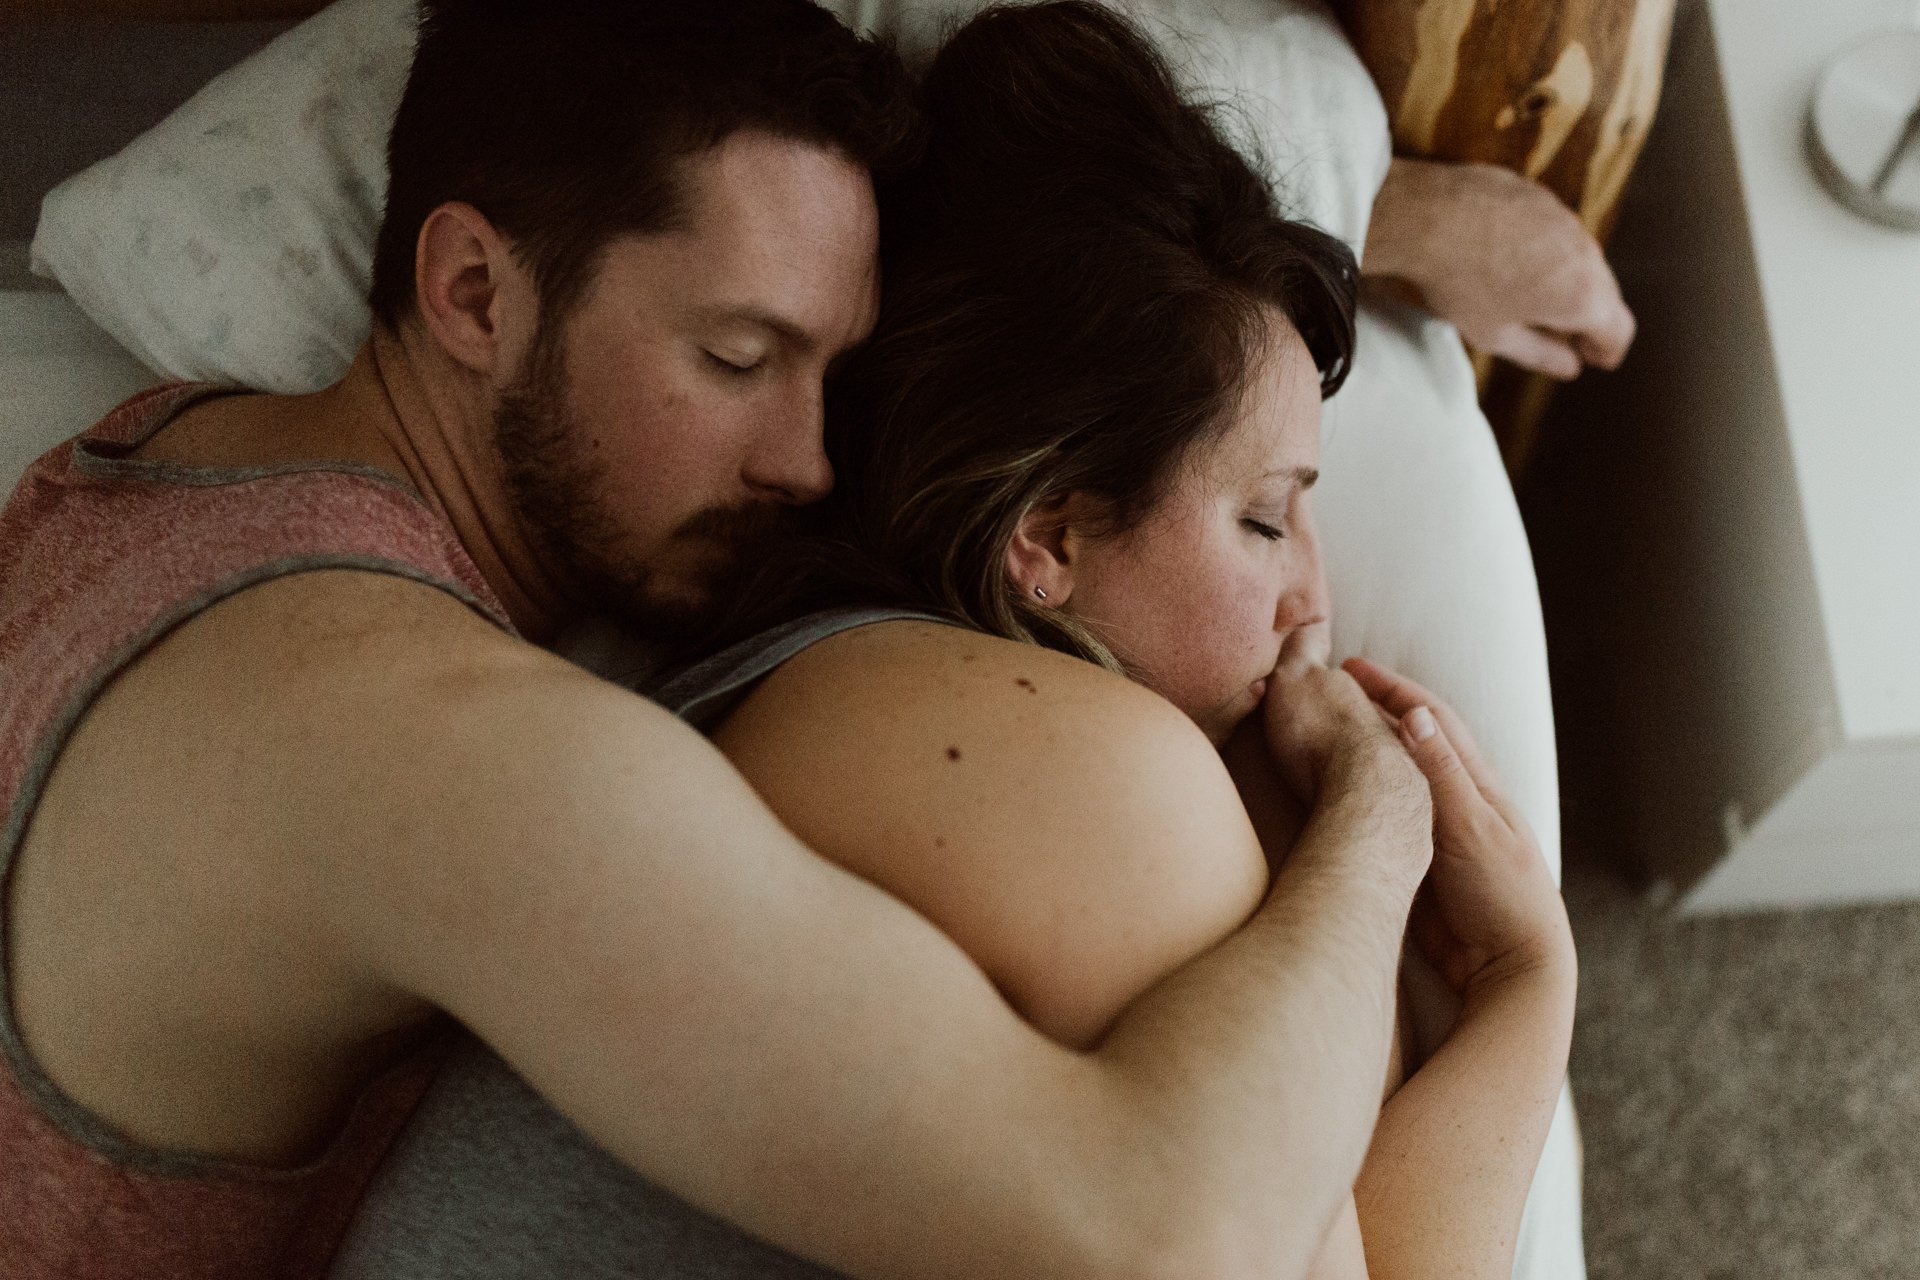 cedarandpines-intimate-in-home-session-44.jpg